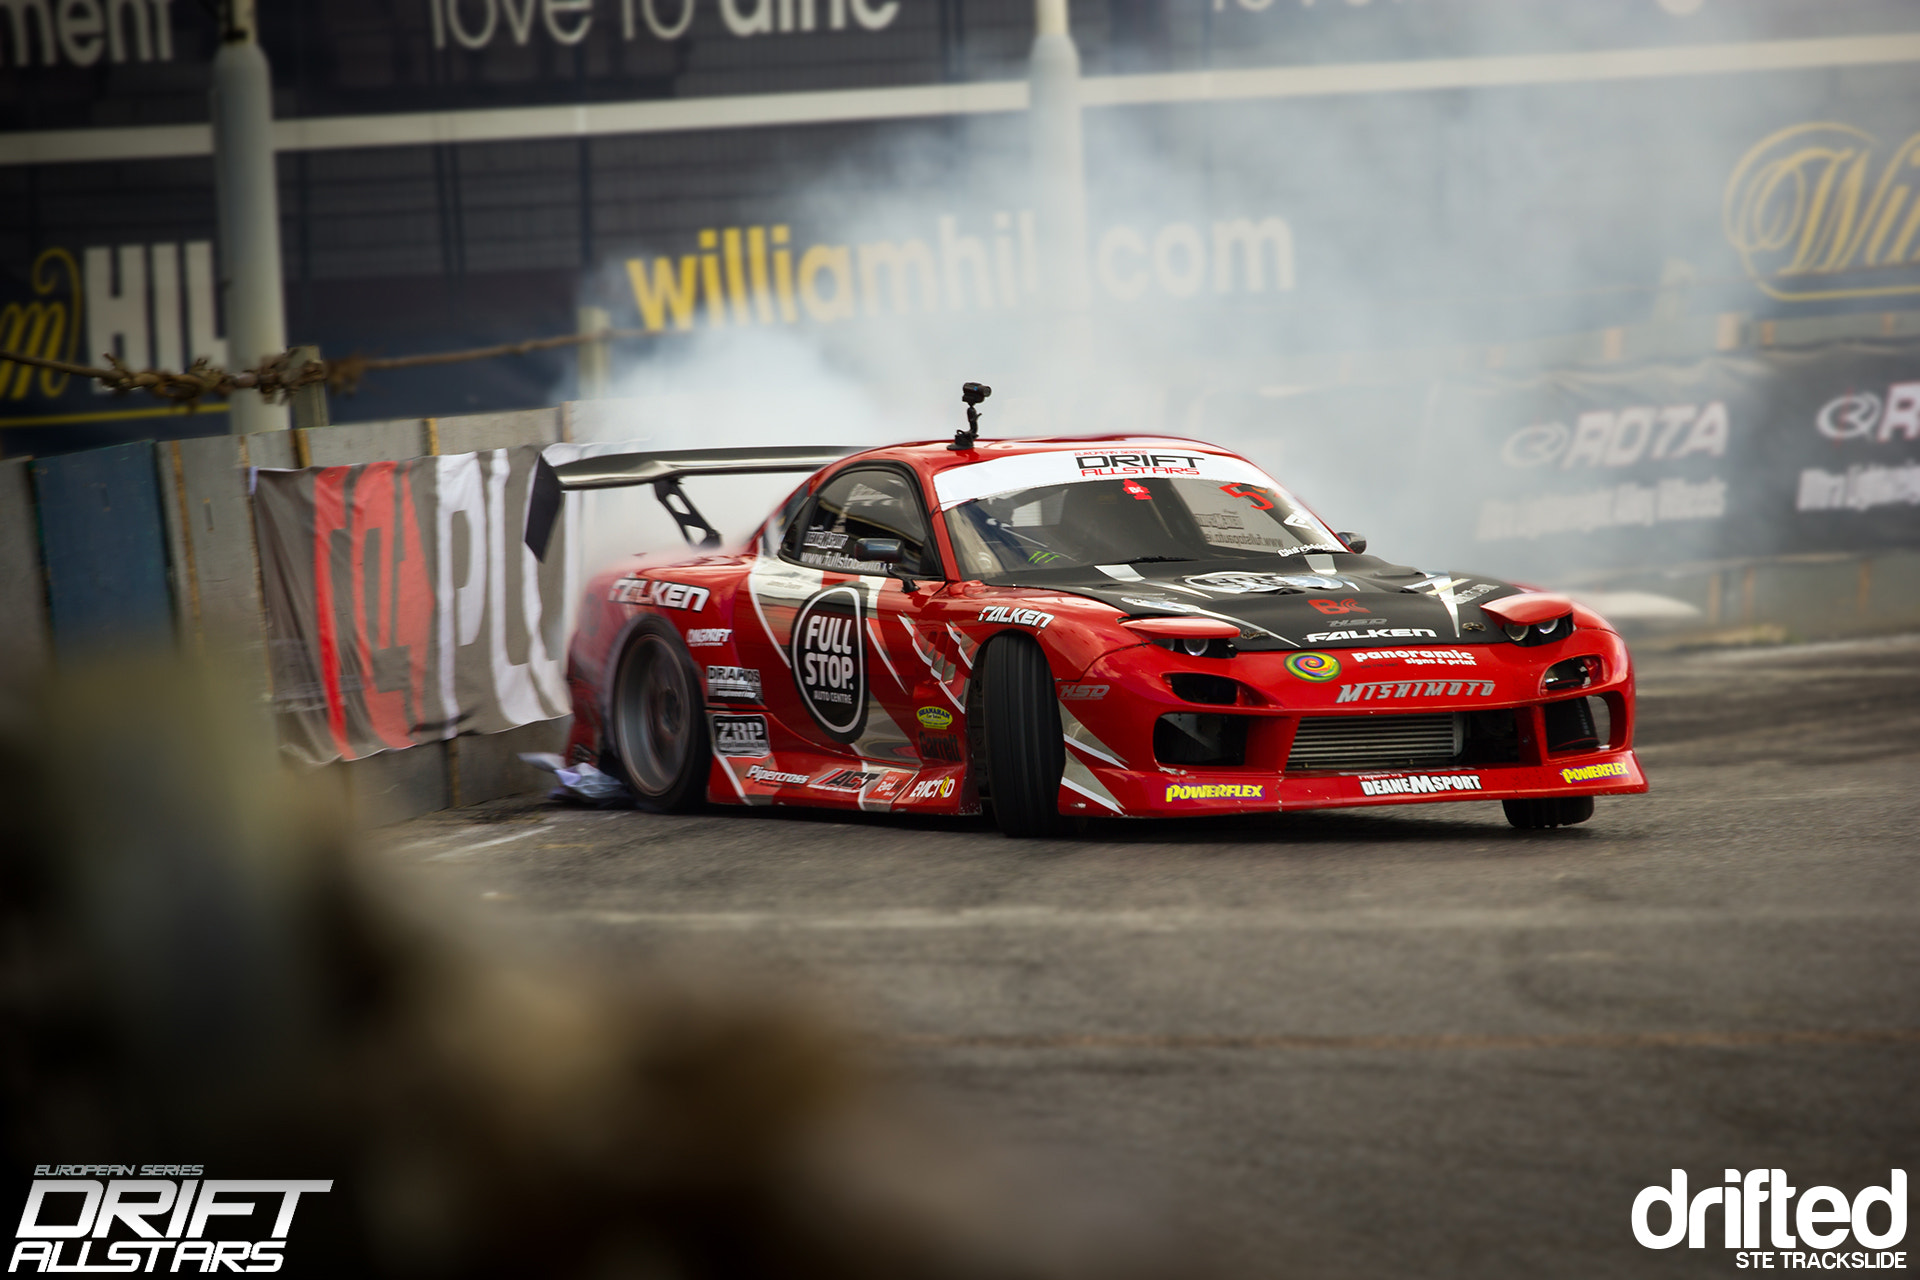 Photograph James Deane RX7 Wallrun 2012... by Ste Trackslide on 500px